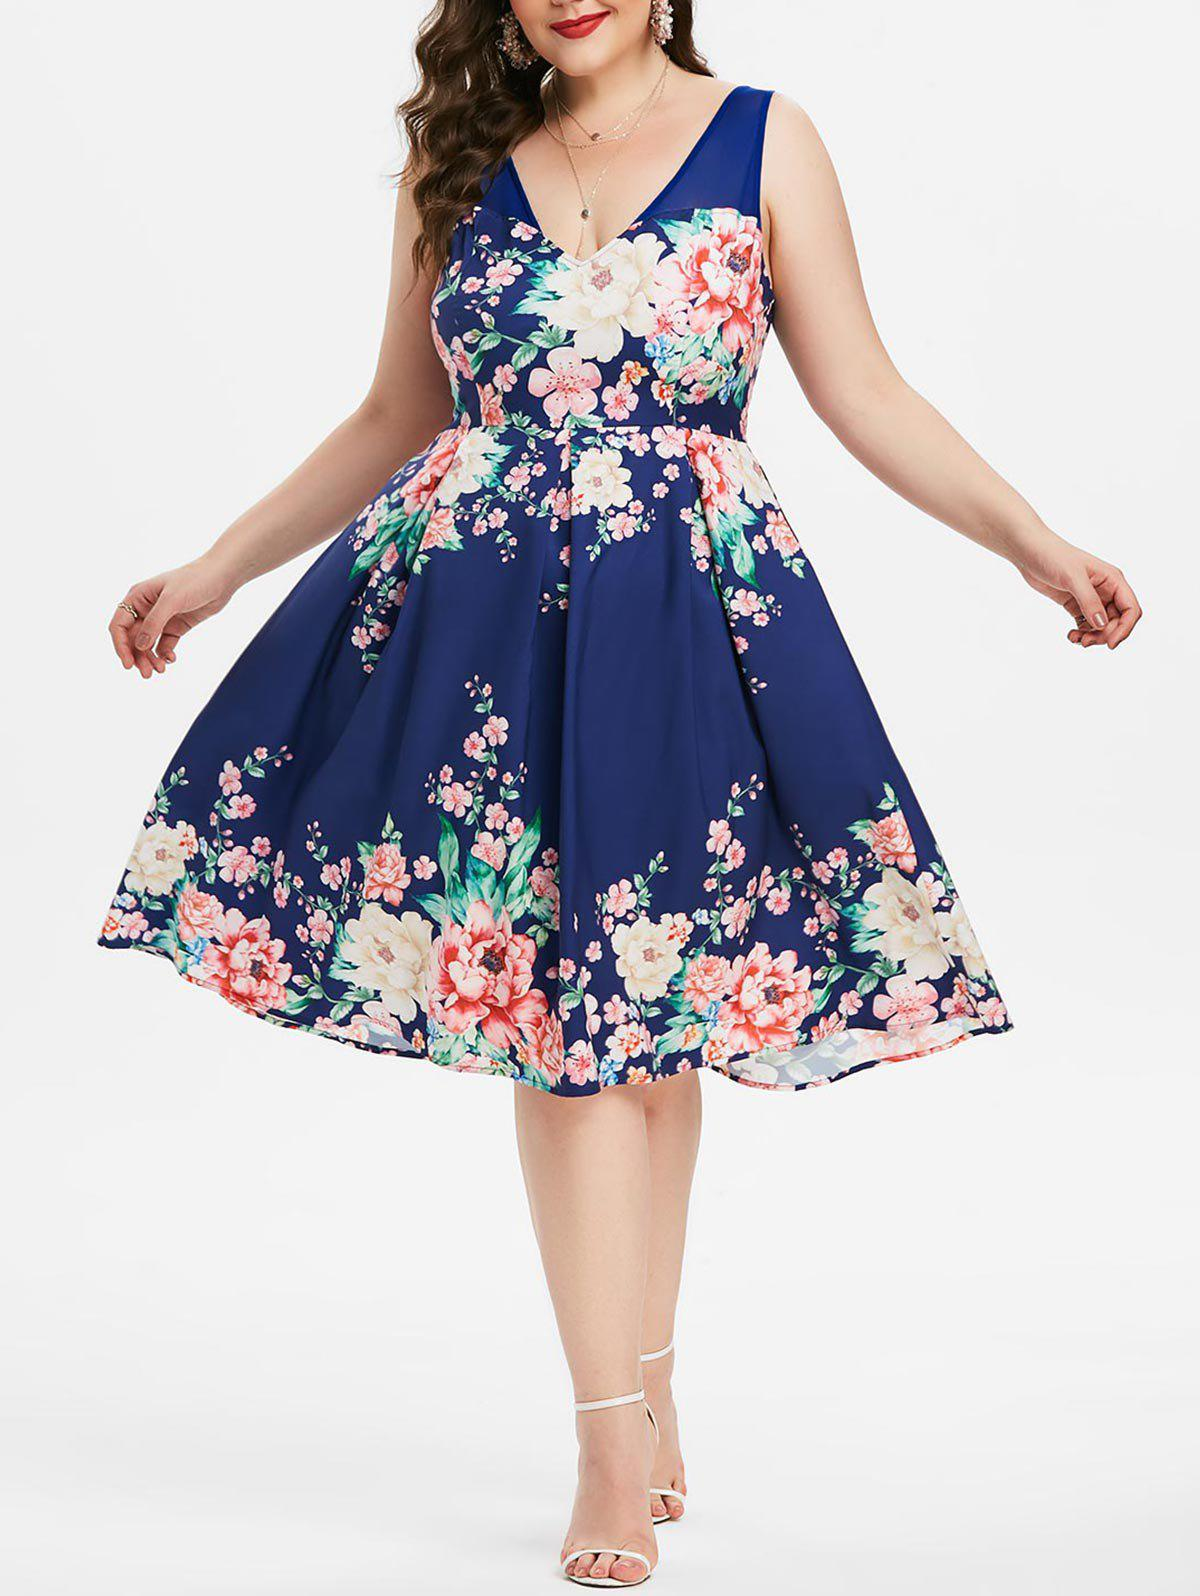 Plus Size Low Cut Mesh Insert Floral Midi Dress - multicolor L